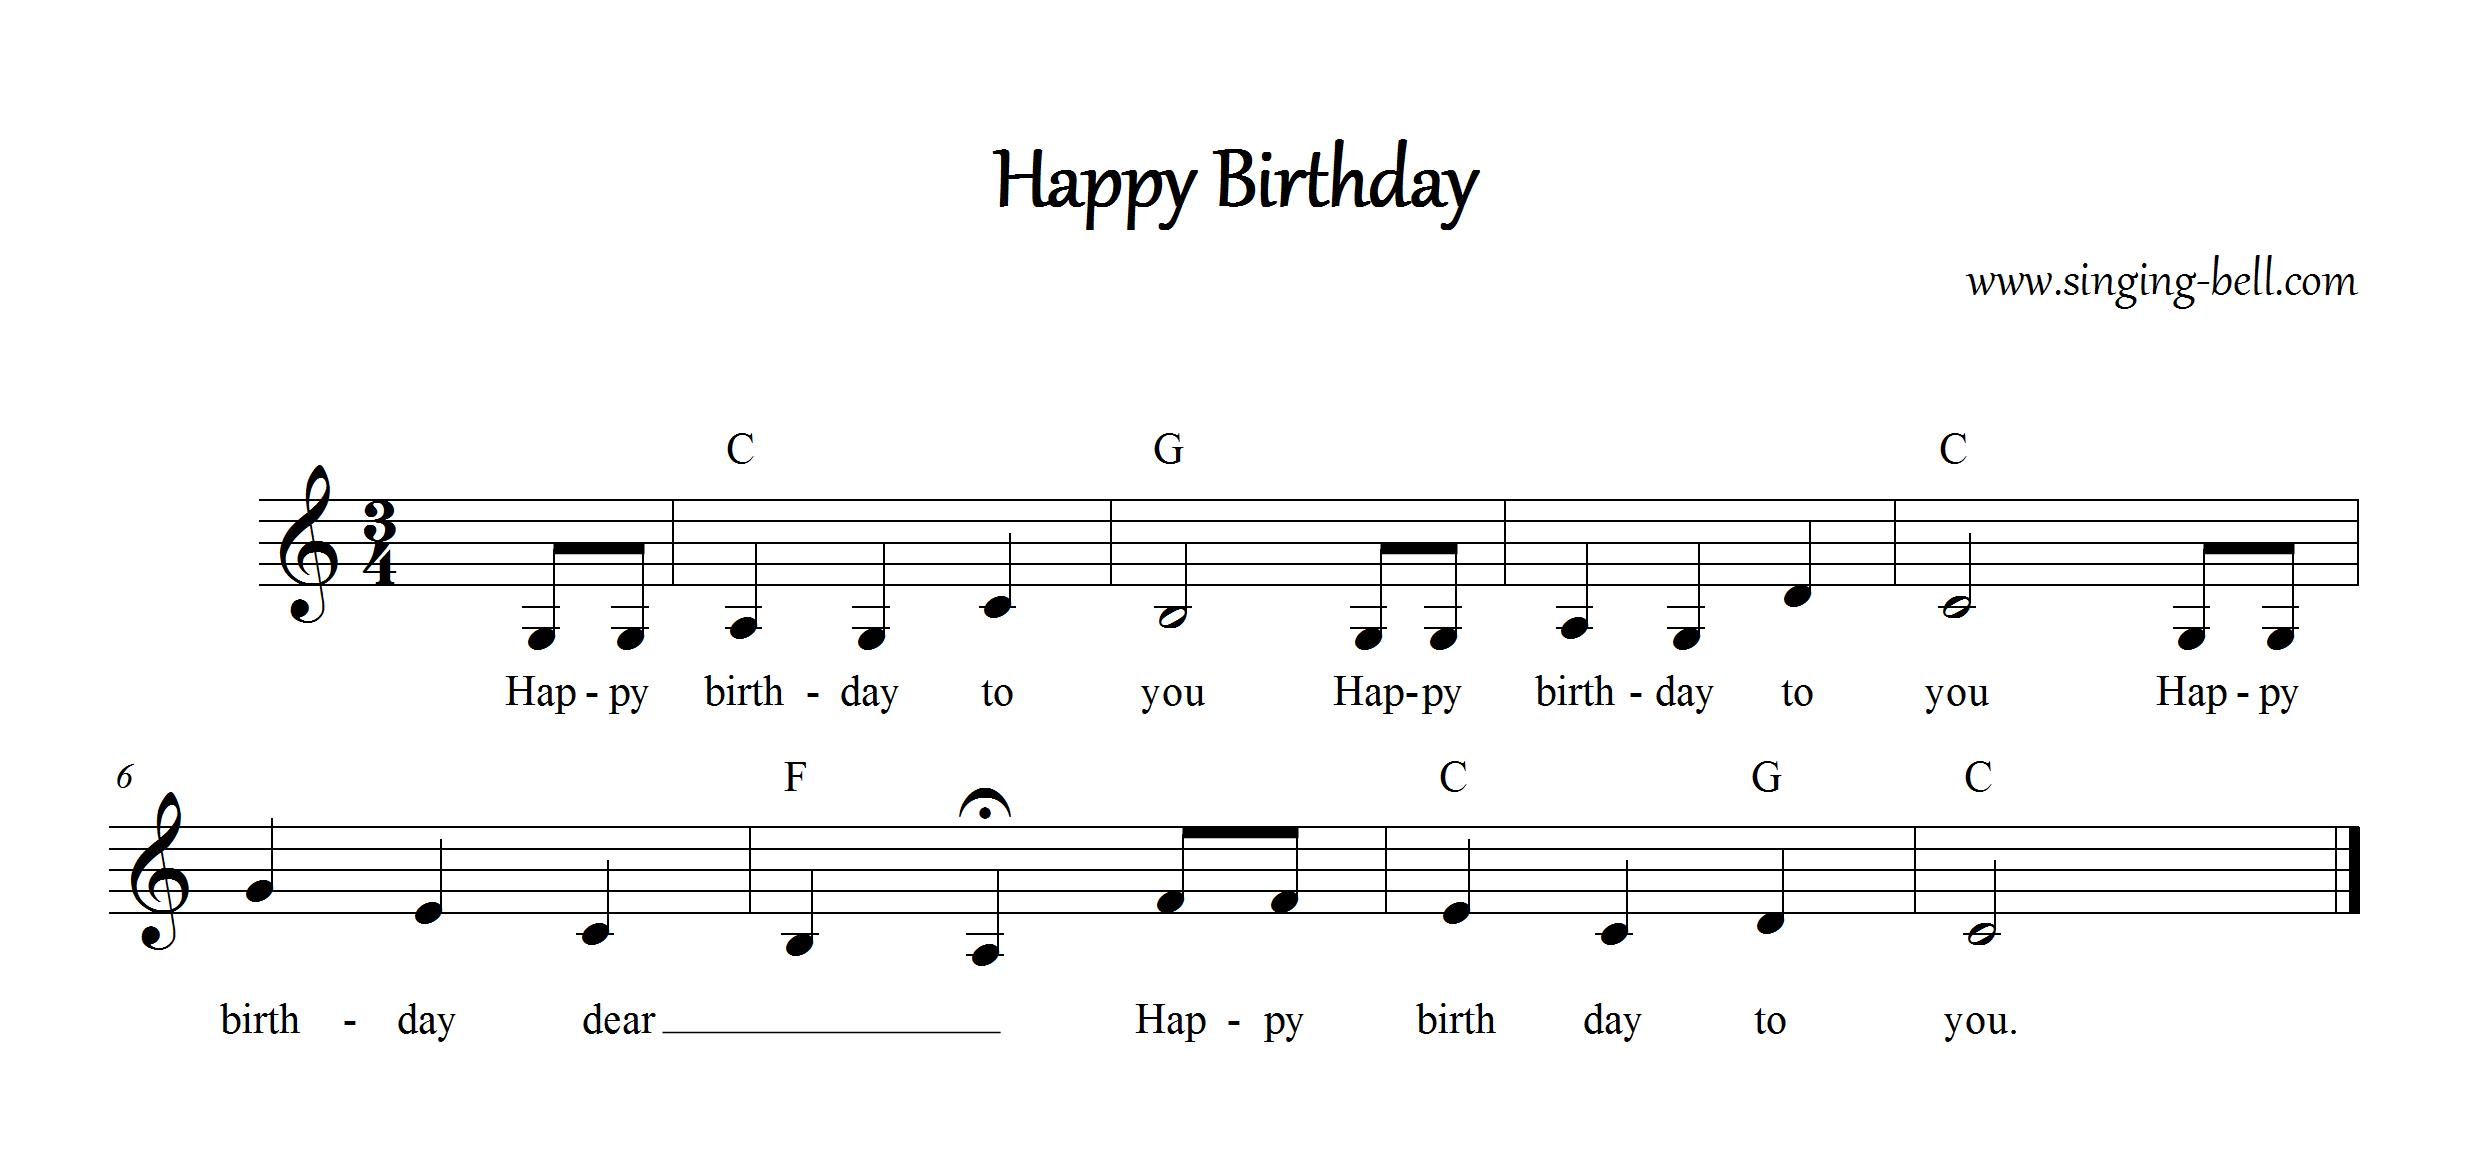 cancion happy birthday ; Happy-Birthday_C_Singing-Bell